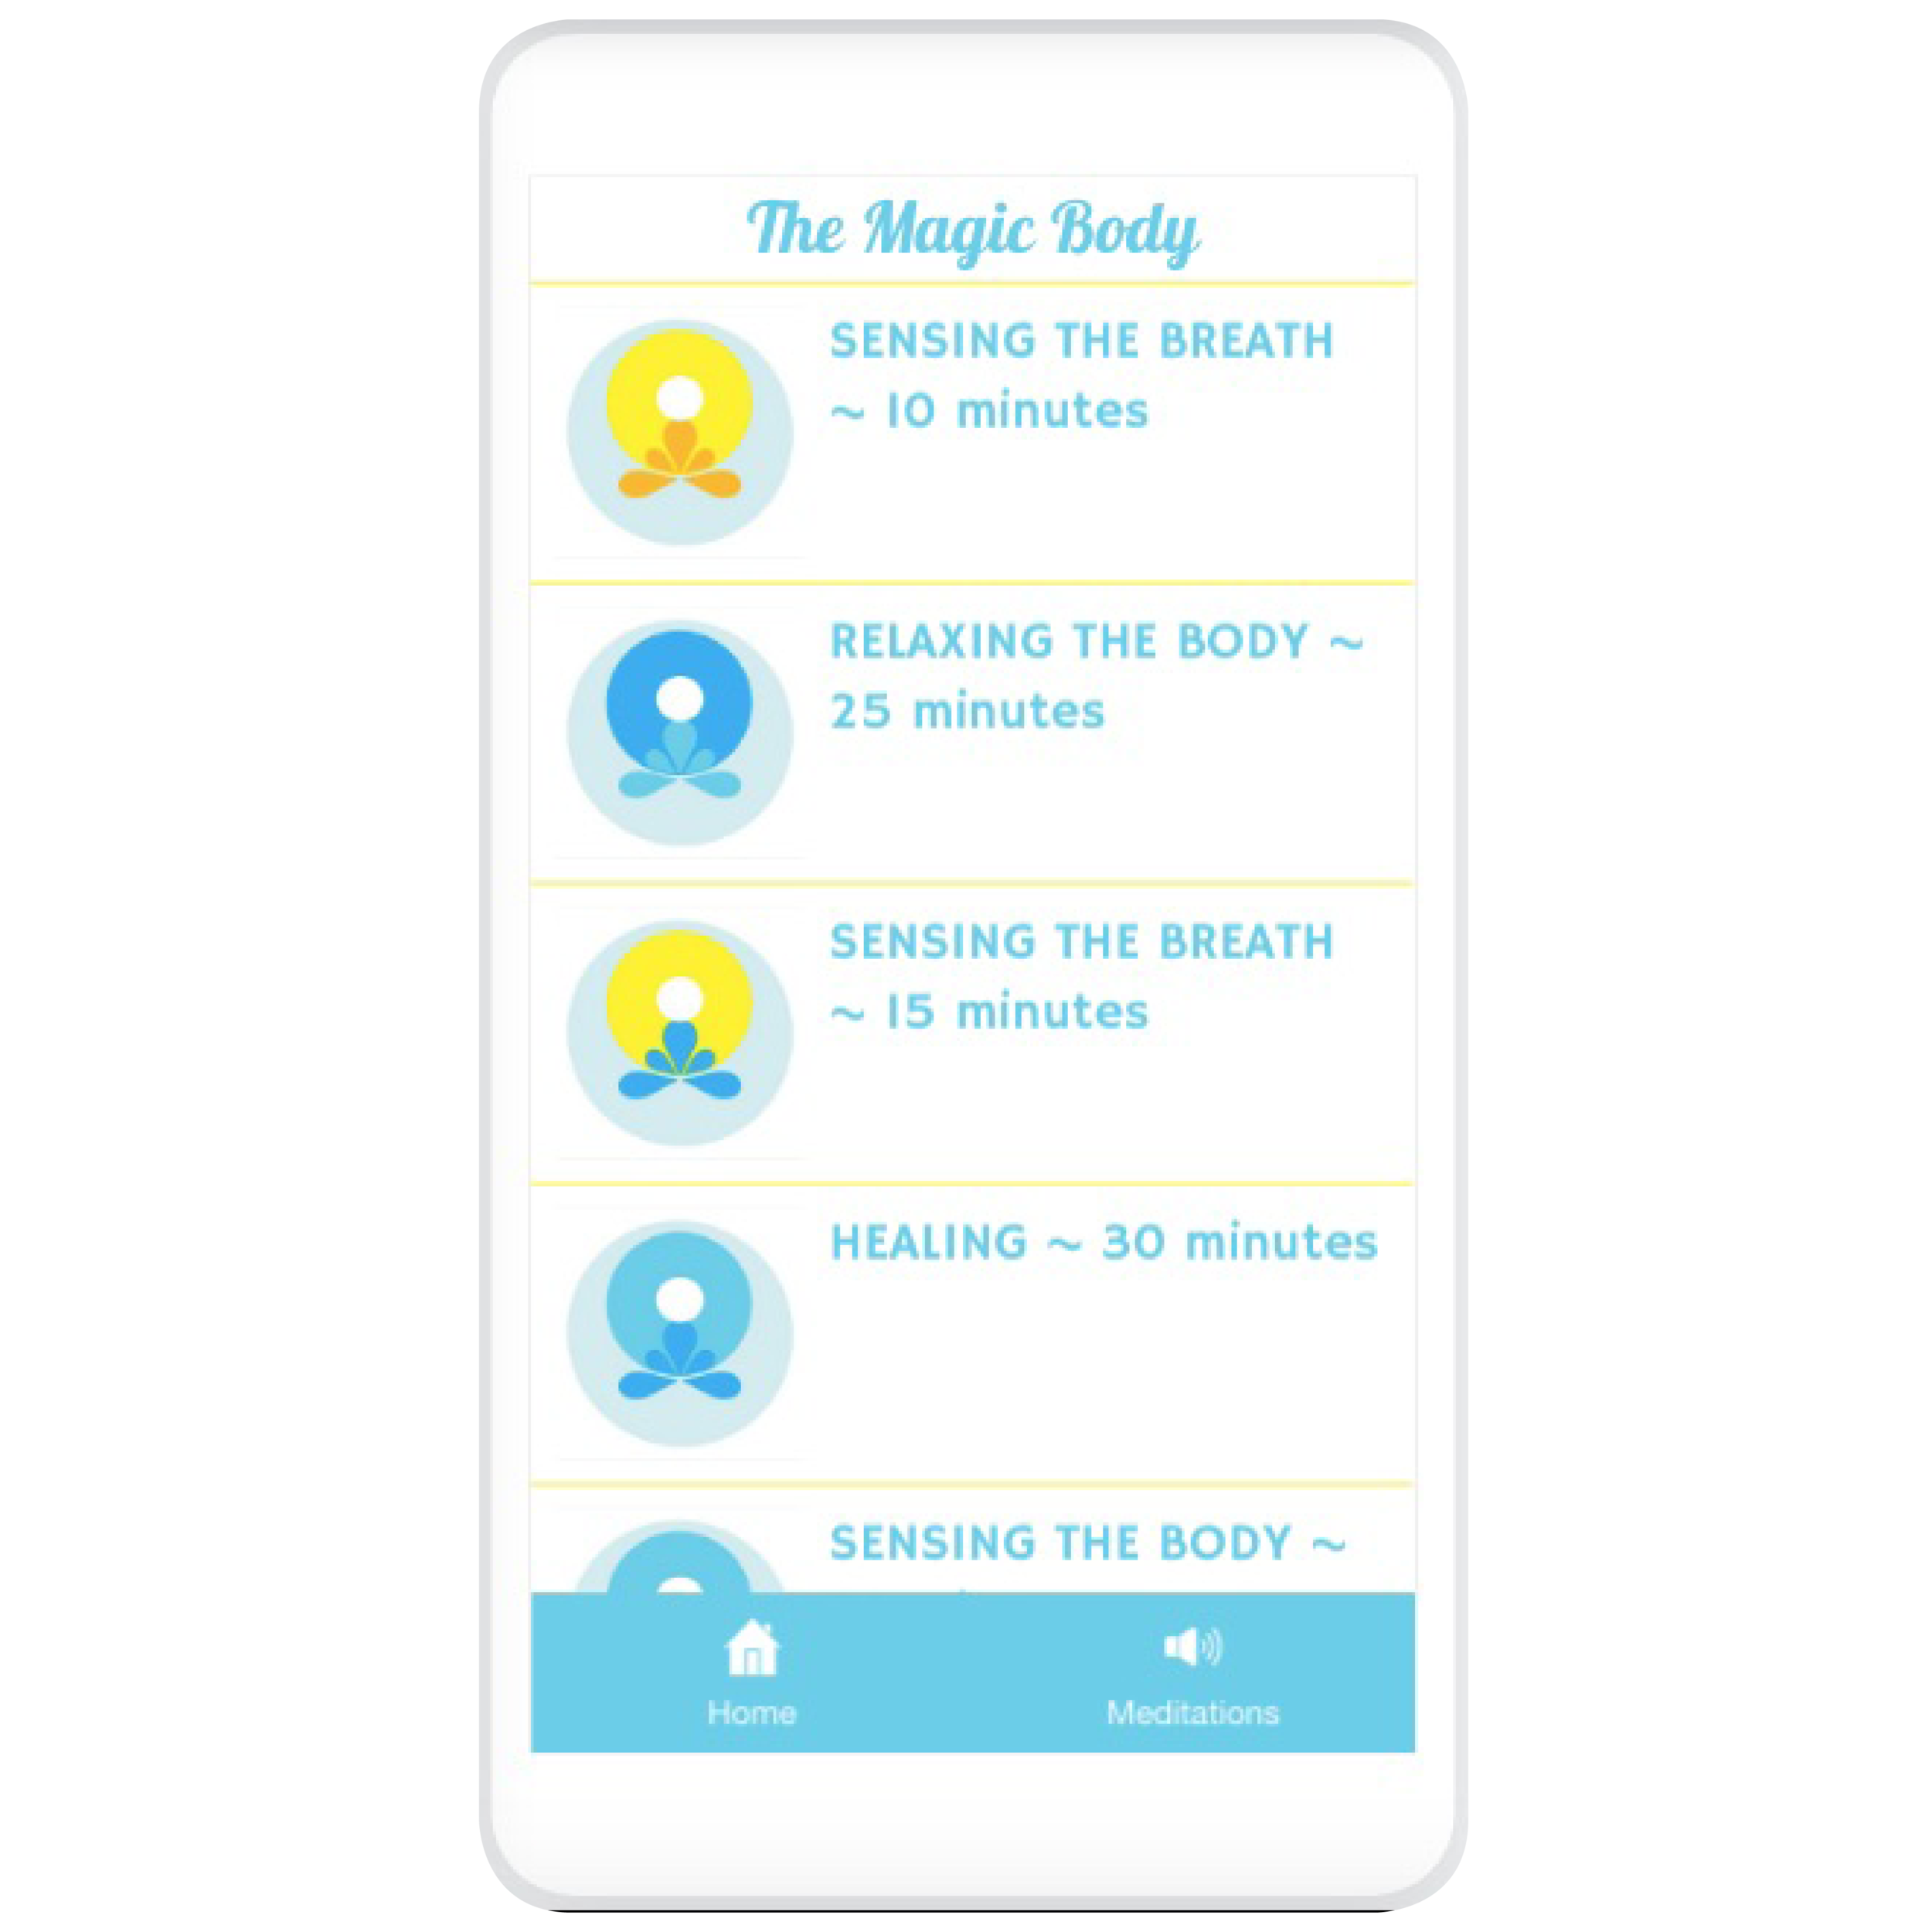 Download the Magic Body Meditation App! - Access the App on Desktop or Download it to your Phone, FREE here